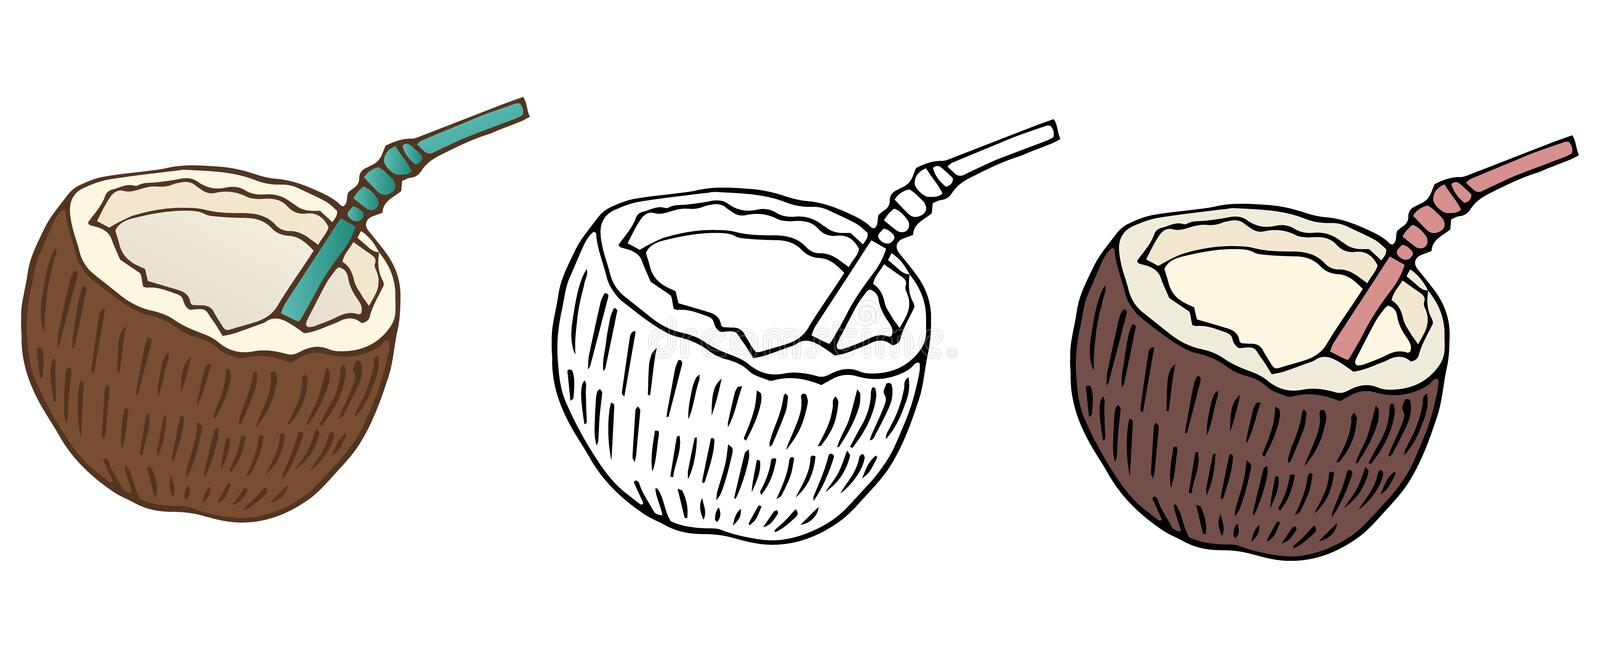 Cartoon coconuts color cafe set nature hand draw food art royalty free illustration